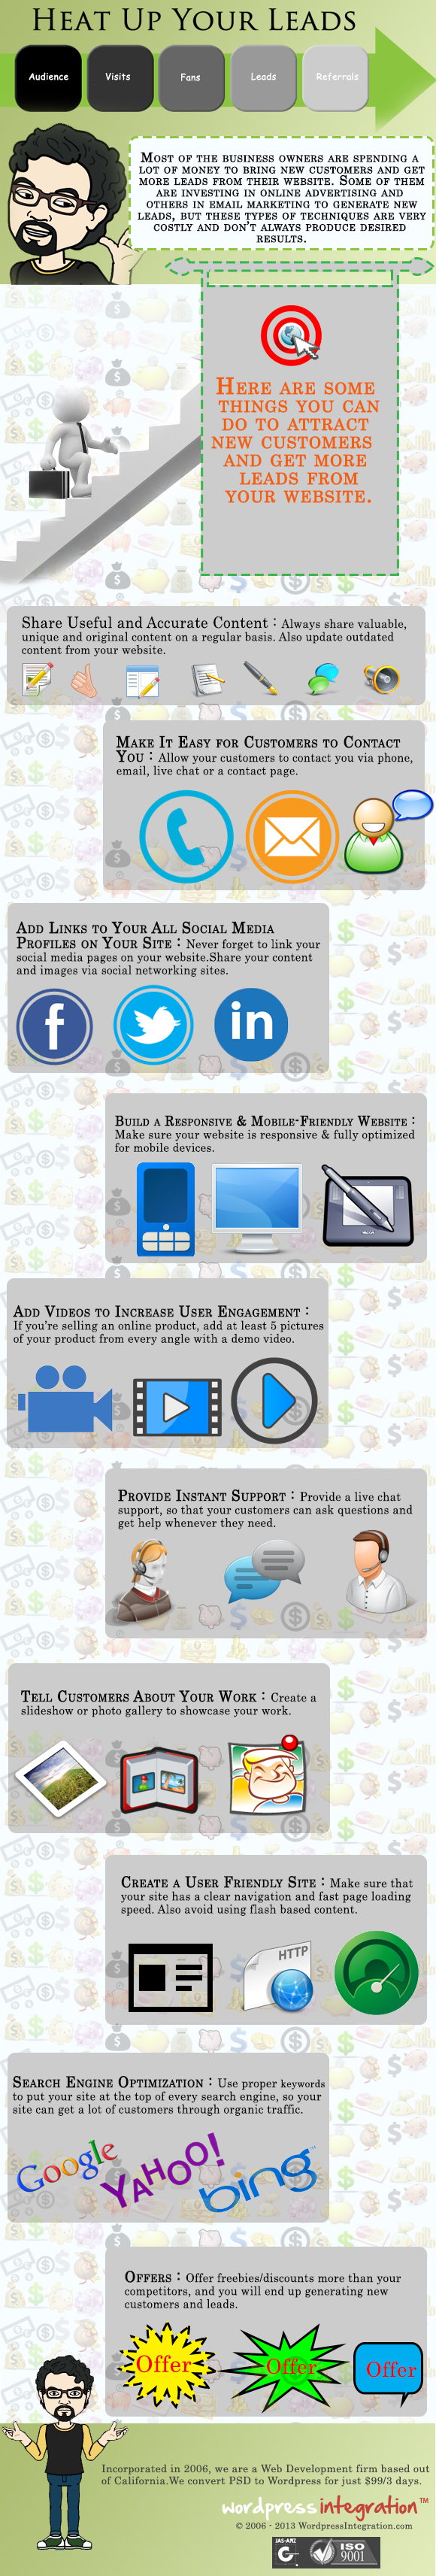 tips-to-generate-more-leads-infographic